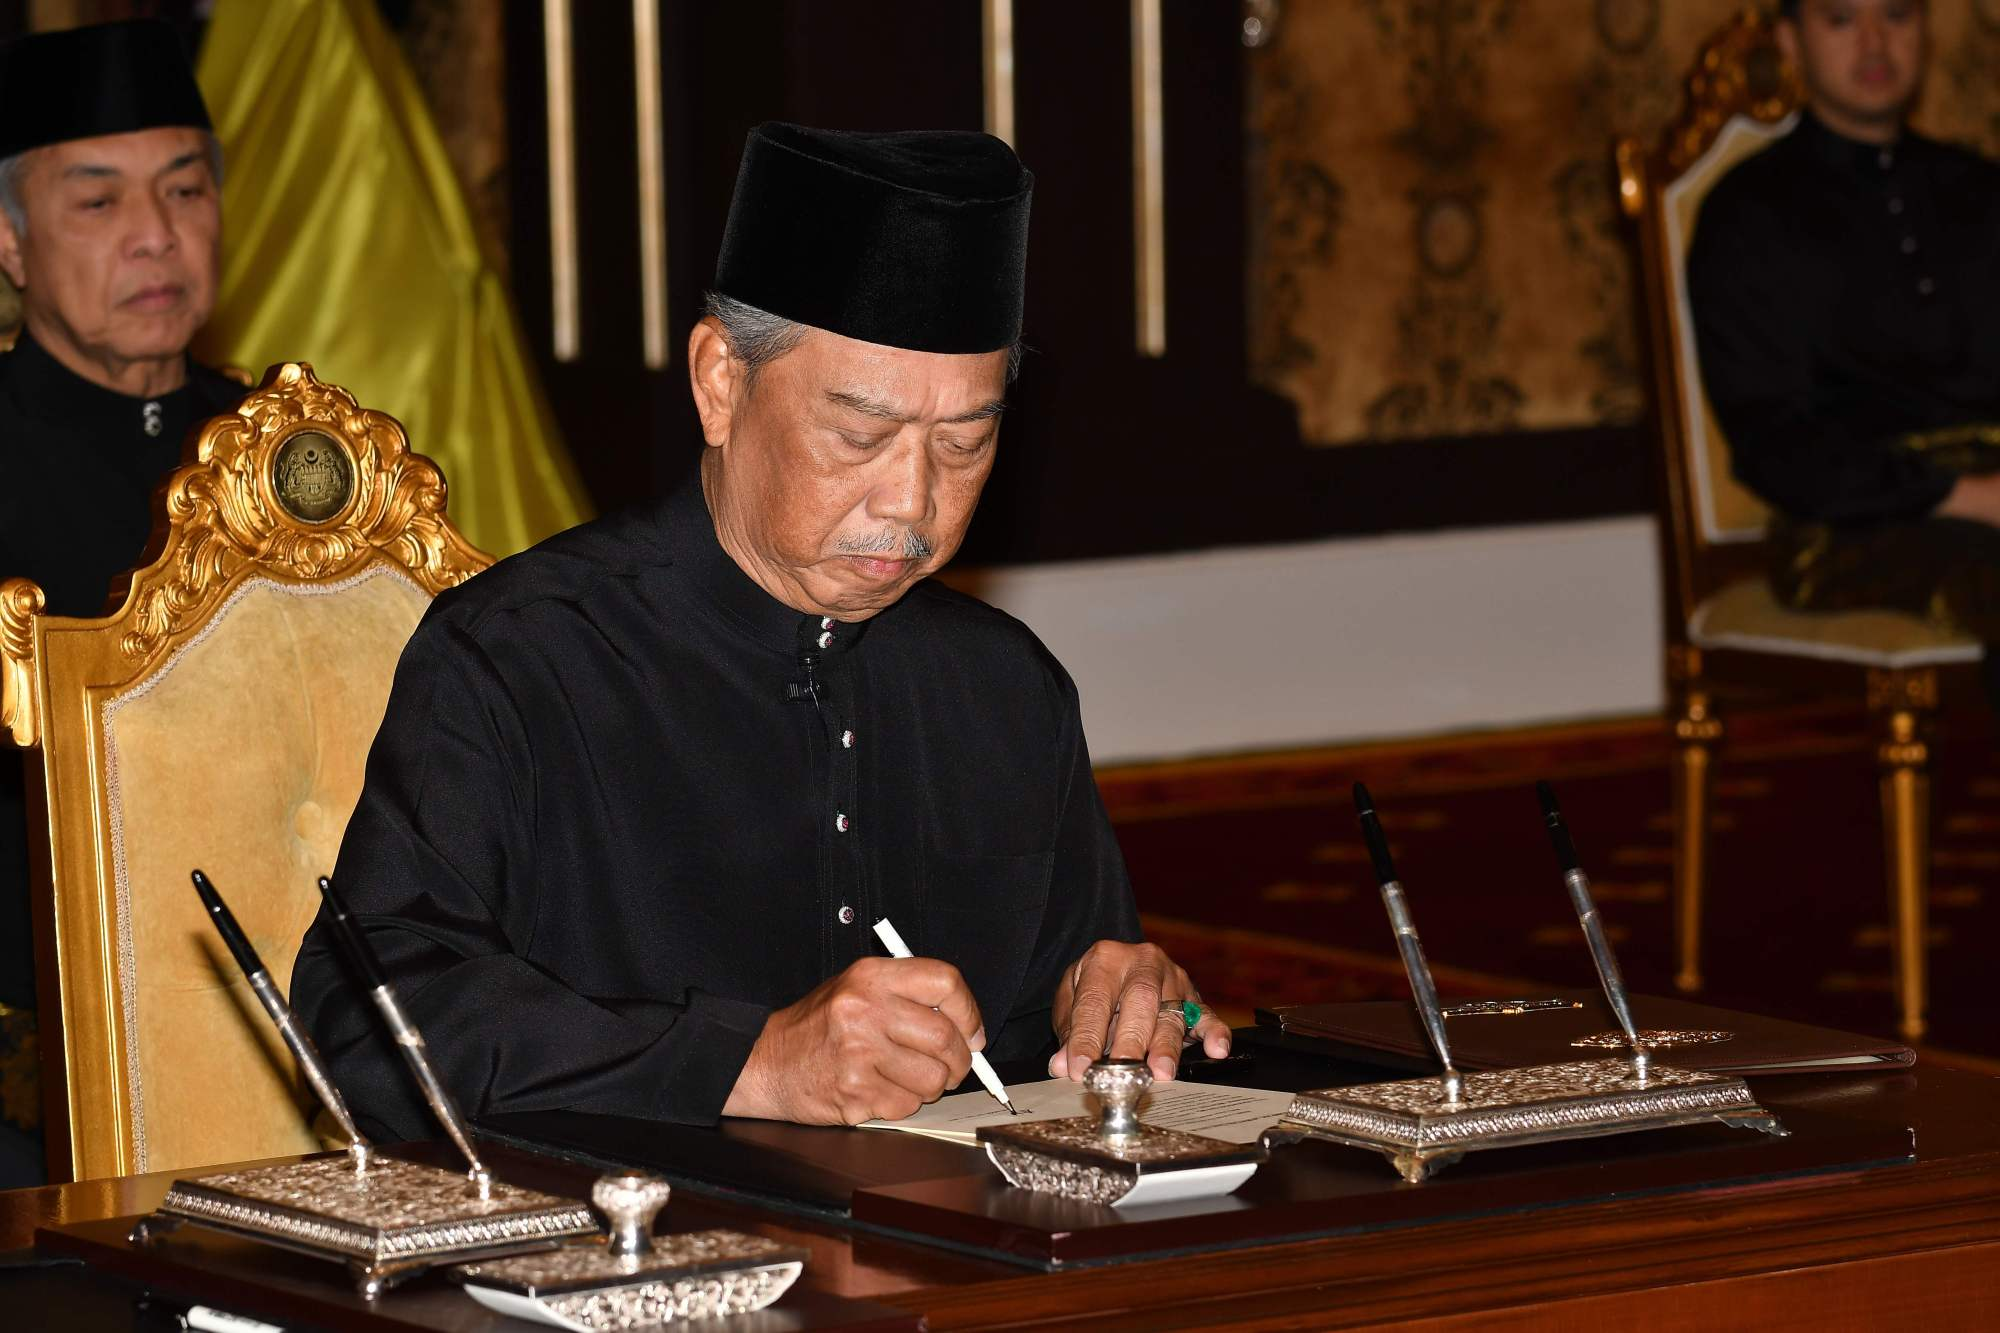 Malaysian Prime Minister Muhyiddin Yassin signs documents after taking the oath as the country's new leader at the National Palace in Kuala Lumpur on Sunday. | AFP-JIJI